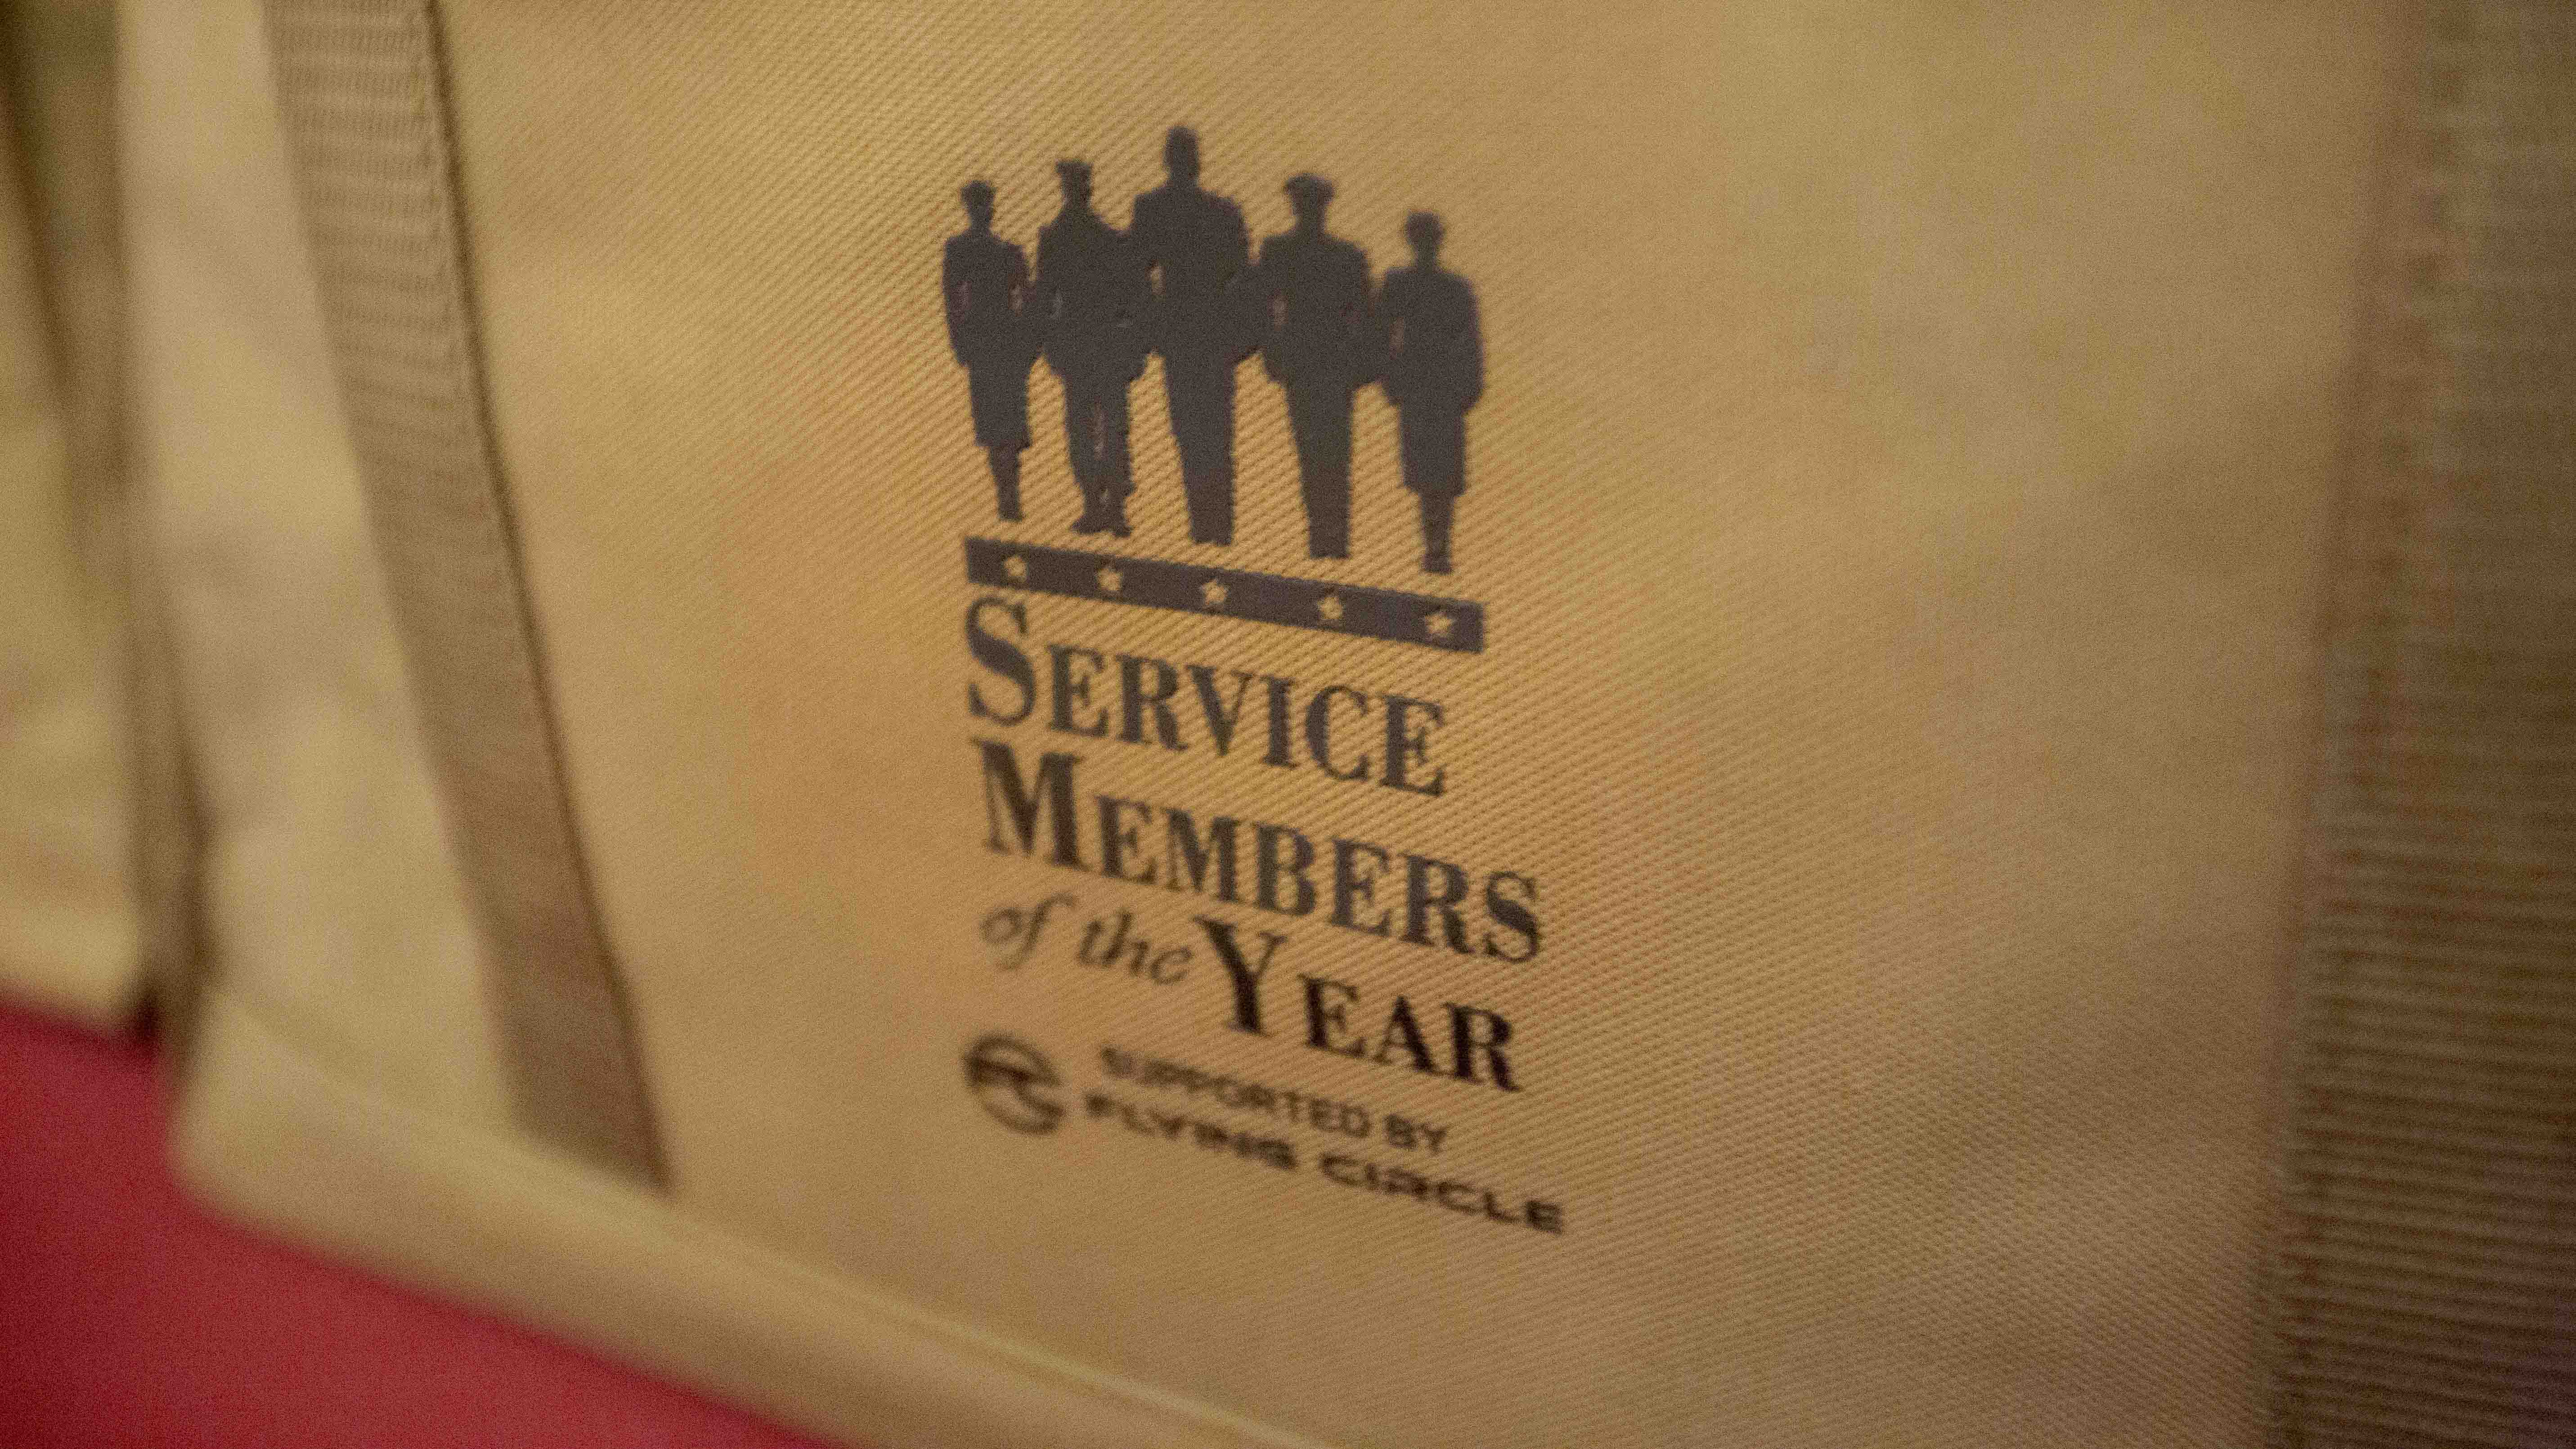 flying-circle-miitary-times-service-members-of-the-year-tote-bags-3.jpg